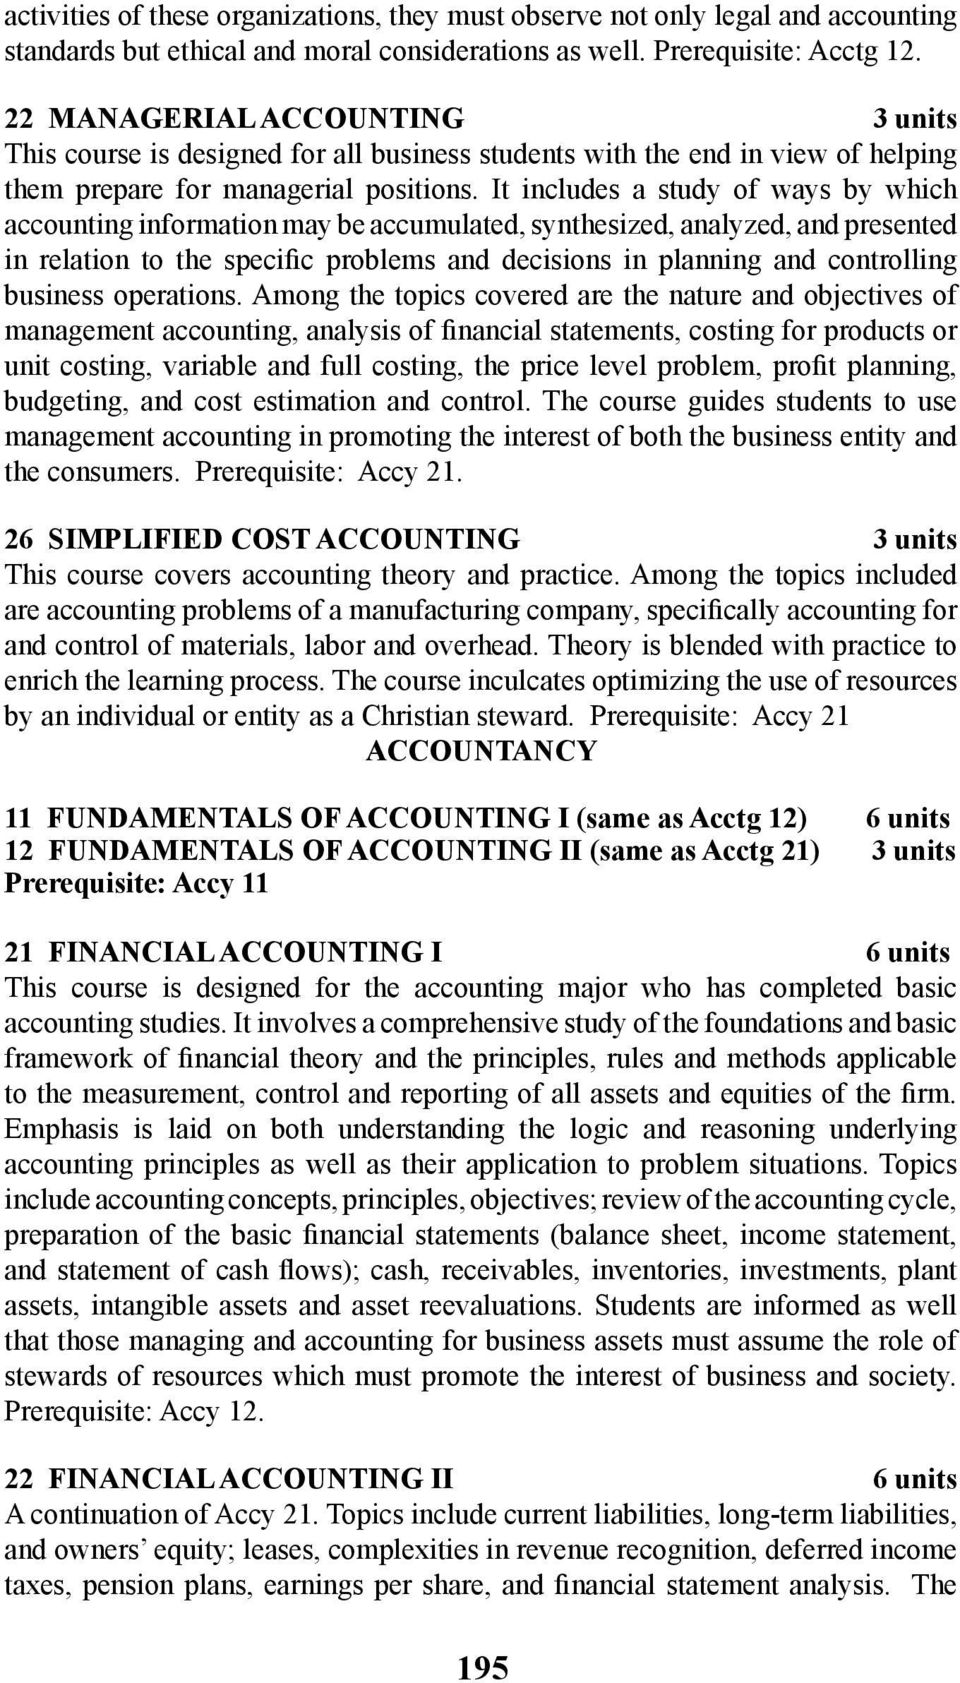 It includes a study of ways by which accounting information may be accumulated, synthesized, analyzed, and presented in relation to the specific problems and decisions in planning and controlling